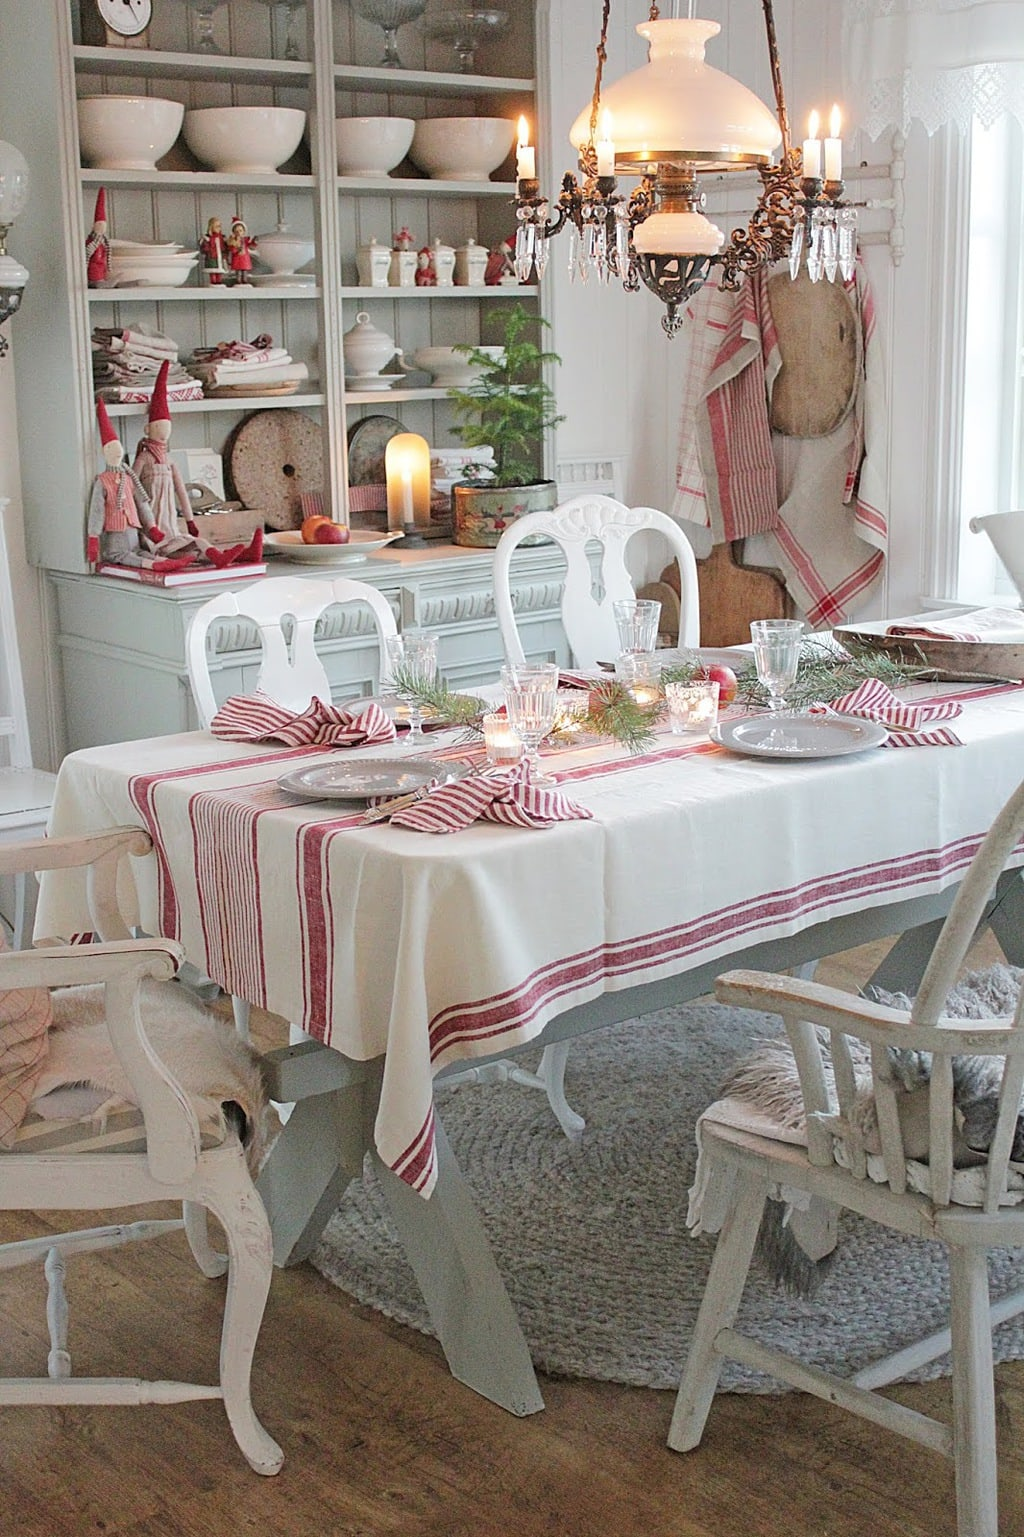 Photo of a holiday tablescape by Vibeke Design.